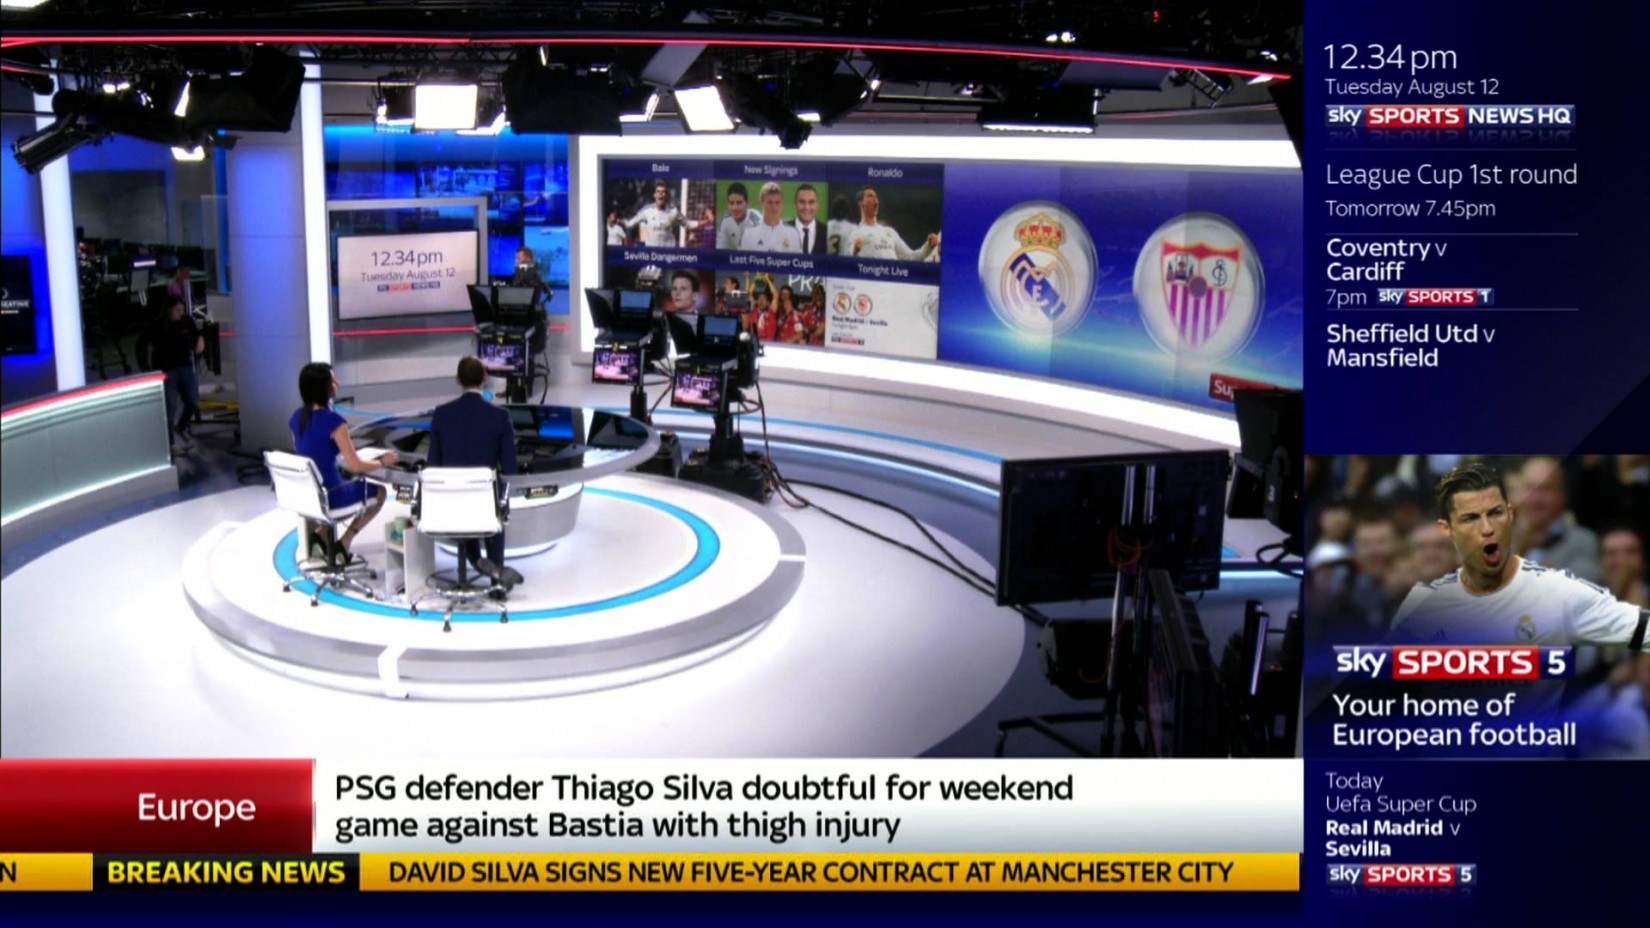 Sky Sports News HQ font - forum | dafont.com